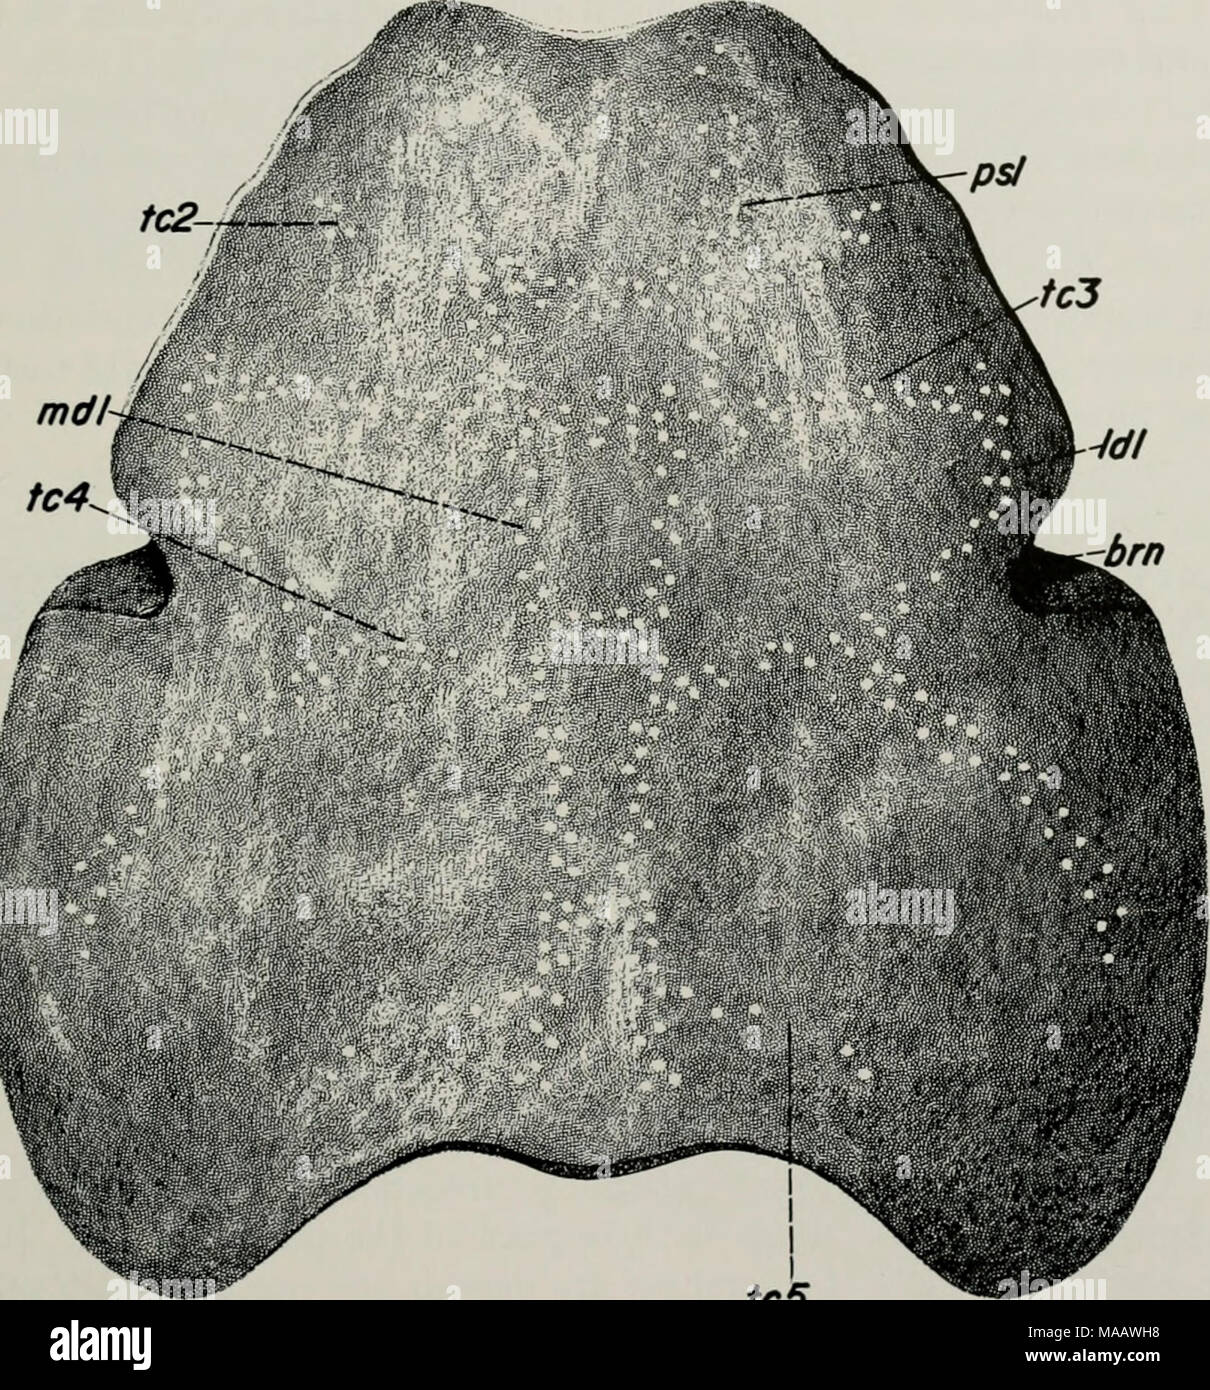 . Early Devonian fishes from Utah : Heteroostraci . tc5 Fig. 68. Restoration of dorsal shield of Cardipeltis ivallacii (X H)- brn, branchial notch; Idl, lateral dorsal sensory line; mdl, median dorsal sensory- canal; psl, ?pineal-supraorbital sensory canal; ic2-5, dorsal sensory transverse commissures. 4. No specimens have been collected that might represent ros- tral, pineal, or orbital plates. This is, of course, purely negative evidence, but perhaps sufficient collecting has been done so that it has some weight. The following points may be interpreted as supporting the view that the Cardipe - Stock Image